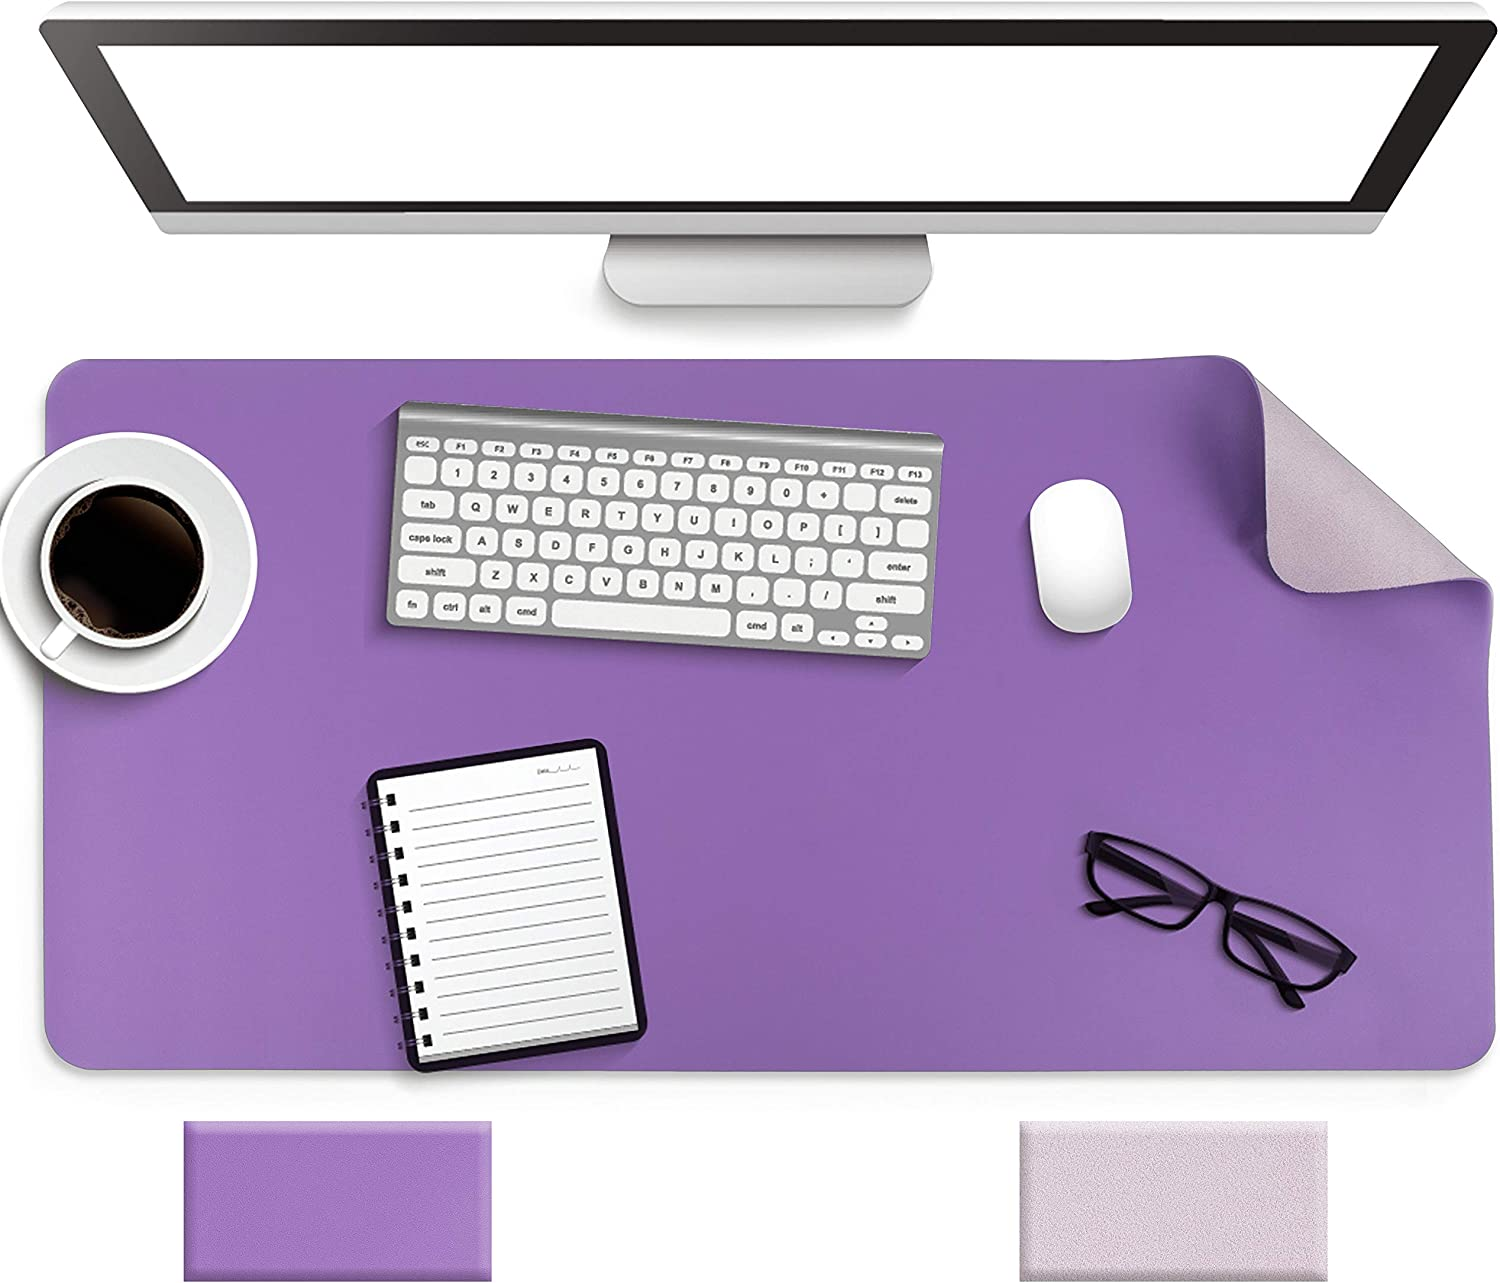 """Non-Slip Desk Pad, Waterproof PVC Leather Desk Table Protector, Ultra Thin Large Mouse Pad, Easy Clean Laptop Desk Writing Mat for Office Work/Home/Decor (Purple, 31.5"""" x 15.7"""")"""